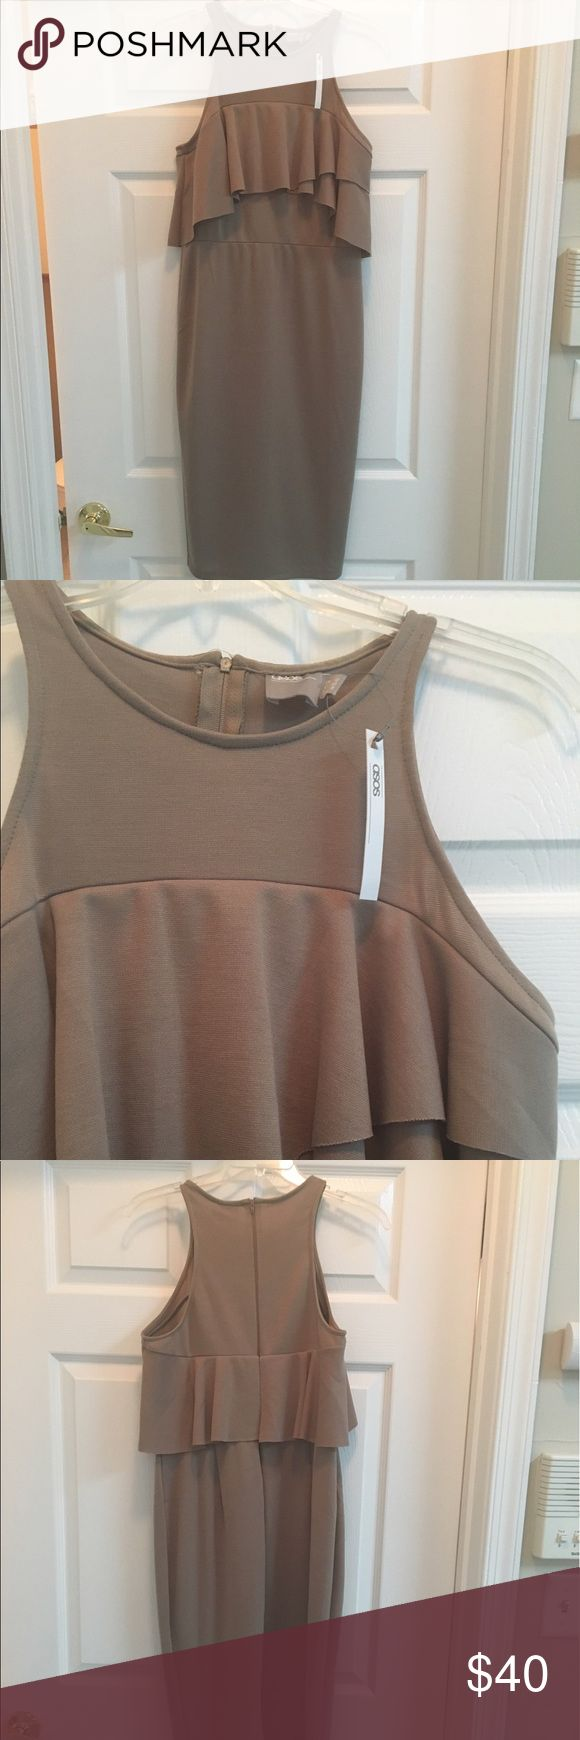 NWT ASOS bodycon dress with ruffle detail - size 8 Cool and easy bodycon dress made out of a heavy jersey fabric. Great for summer time night out or even work. Never worn, great neutral color ASOS Dresses Midi